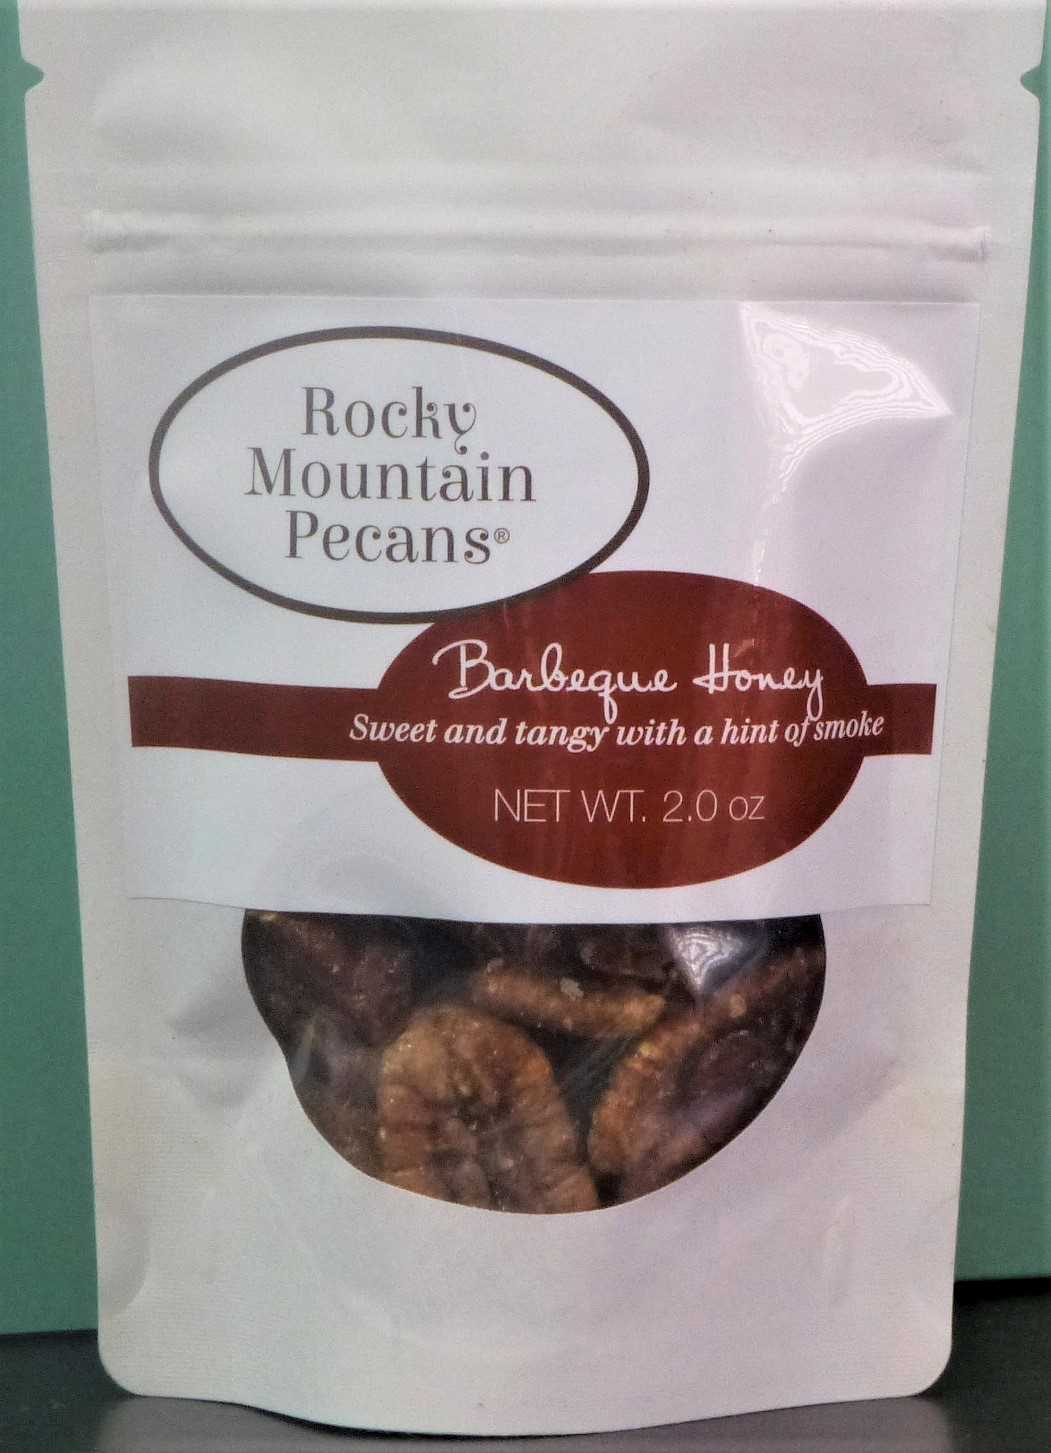 Barbecue Honey Roasted Pecans